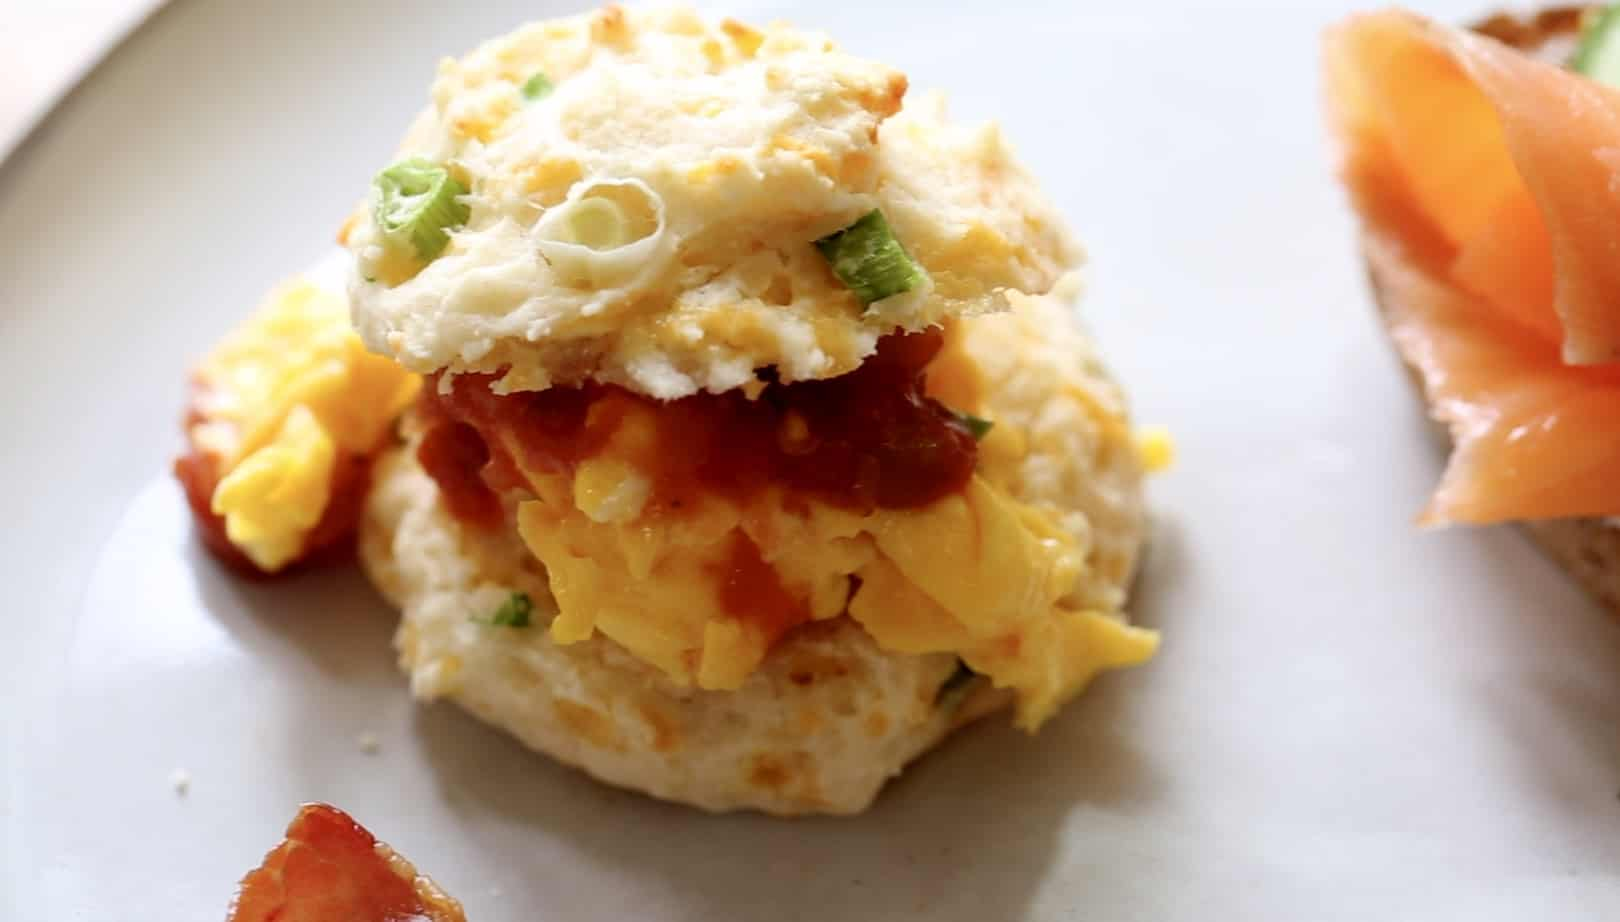 Breakfast Biscuit Sandwich with eggs and salsa